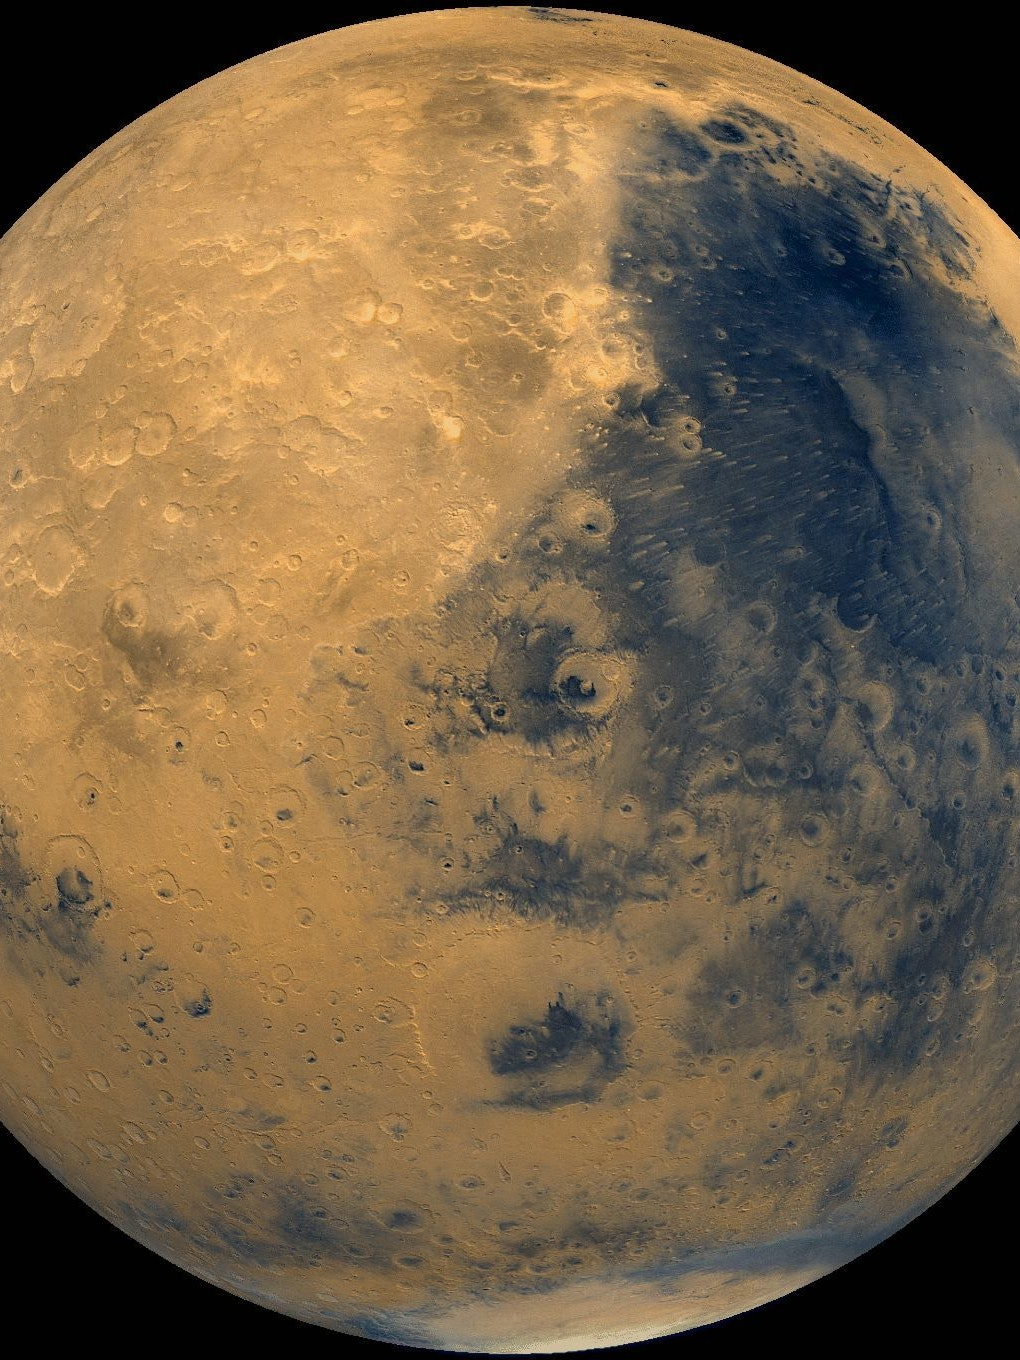 A 2003 image of Mars.